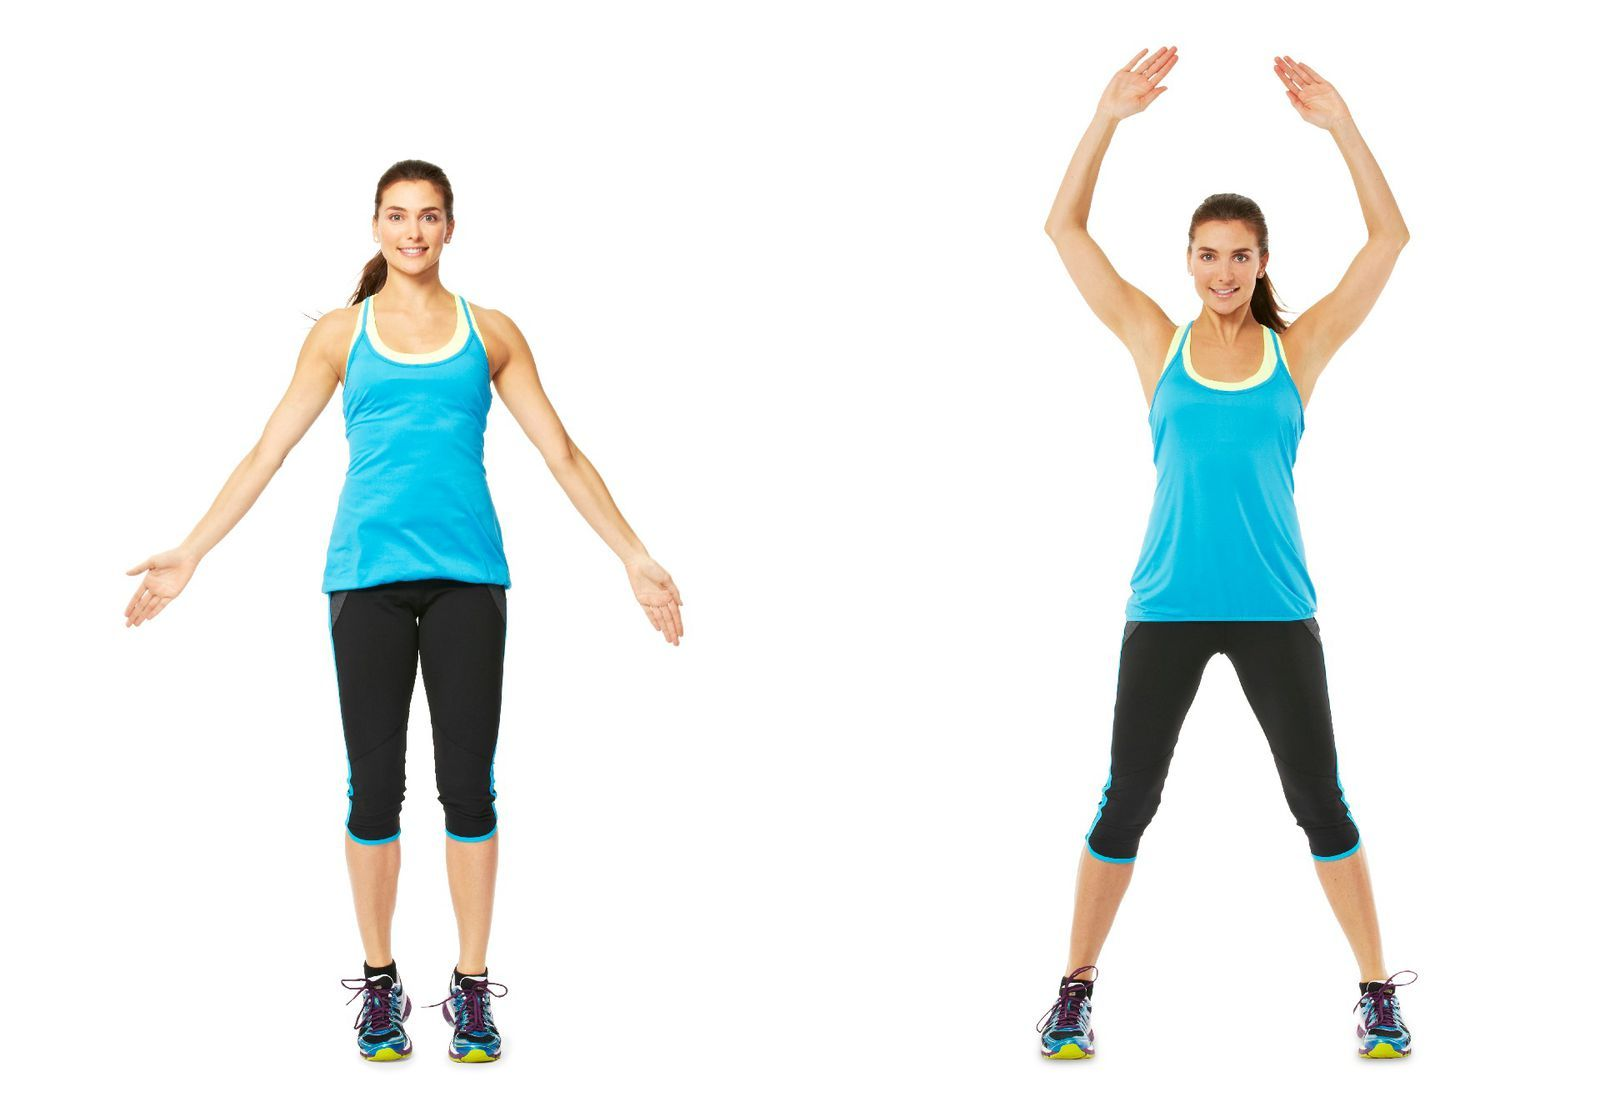 15-Minute Workouts for Every Fitness Goal